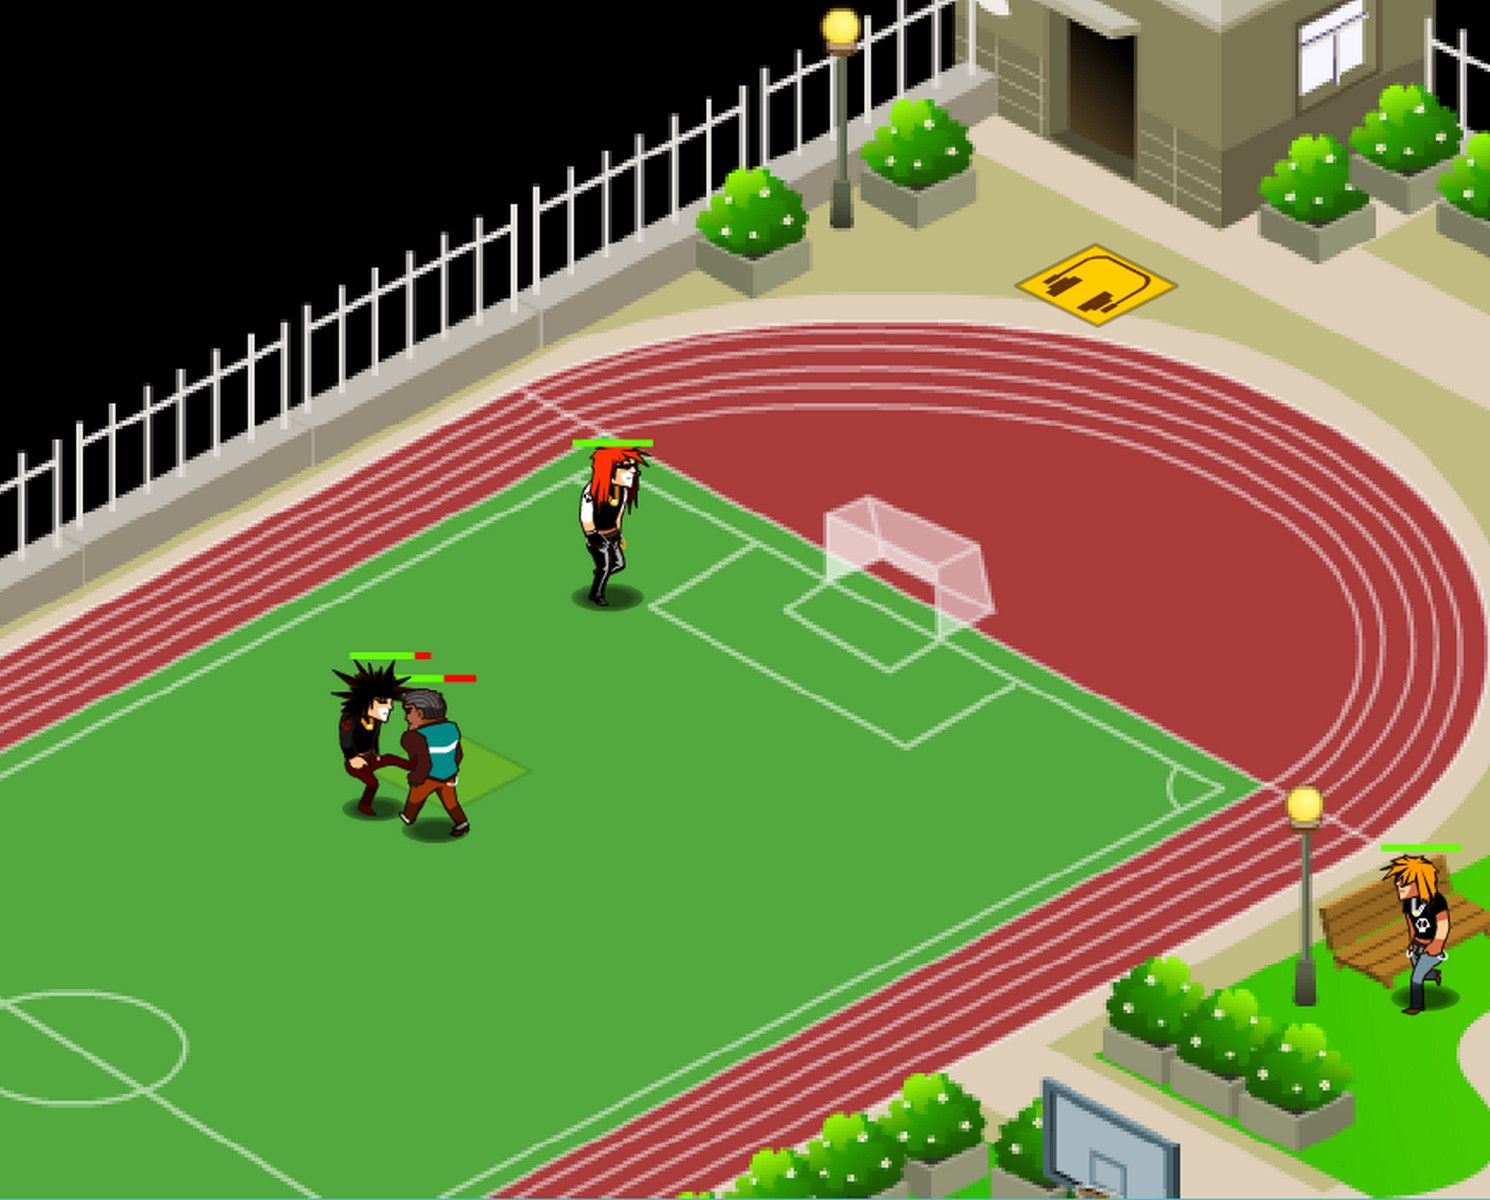 Games Like High School is tough with bullies. Now, fight